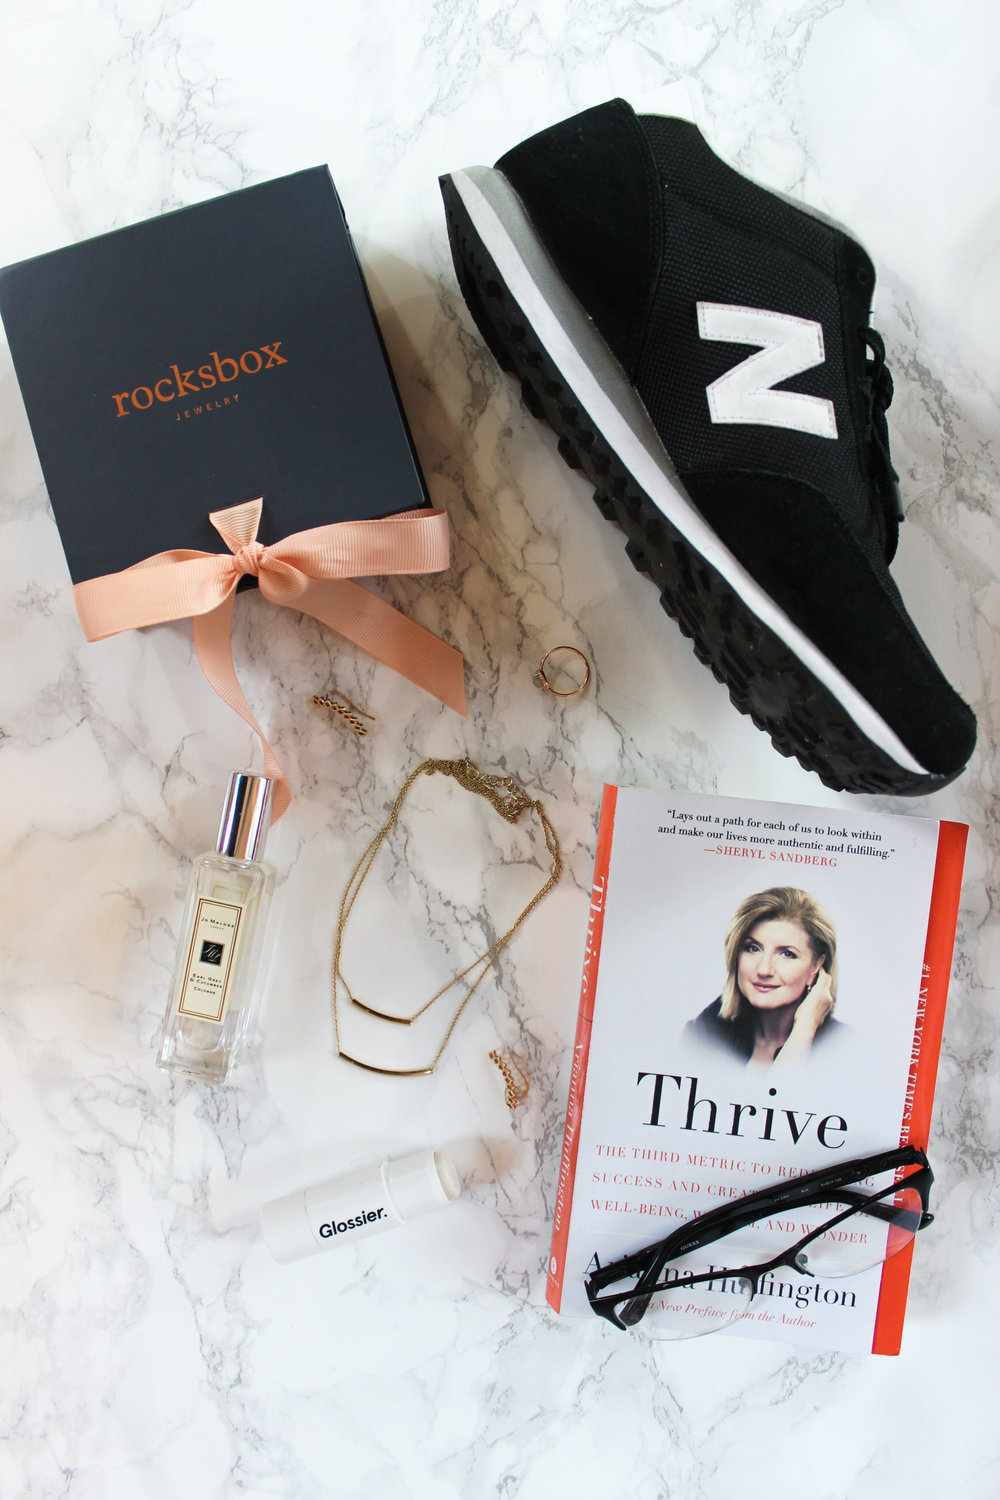 New Balance 501 black sneakers, rocksbox, thrive by arianna huffington, jo malone cologne in earl grey and cucumber, glossier haloscope in moonstone